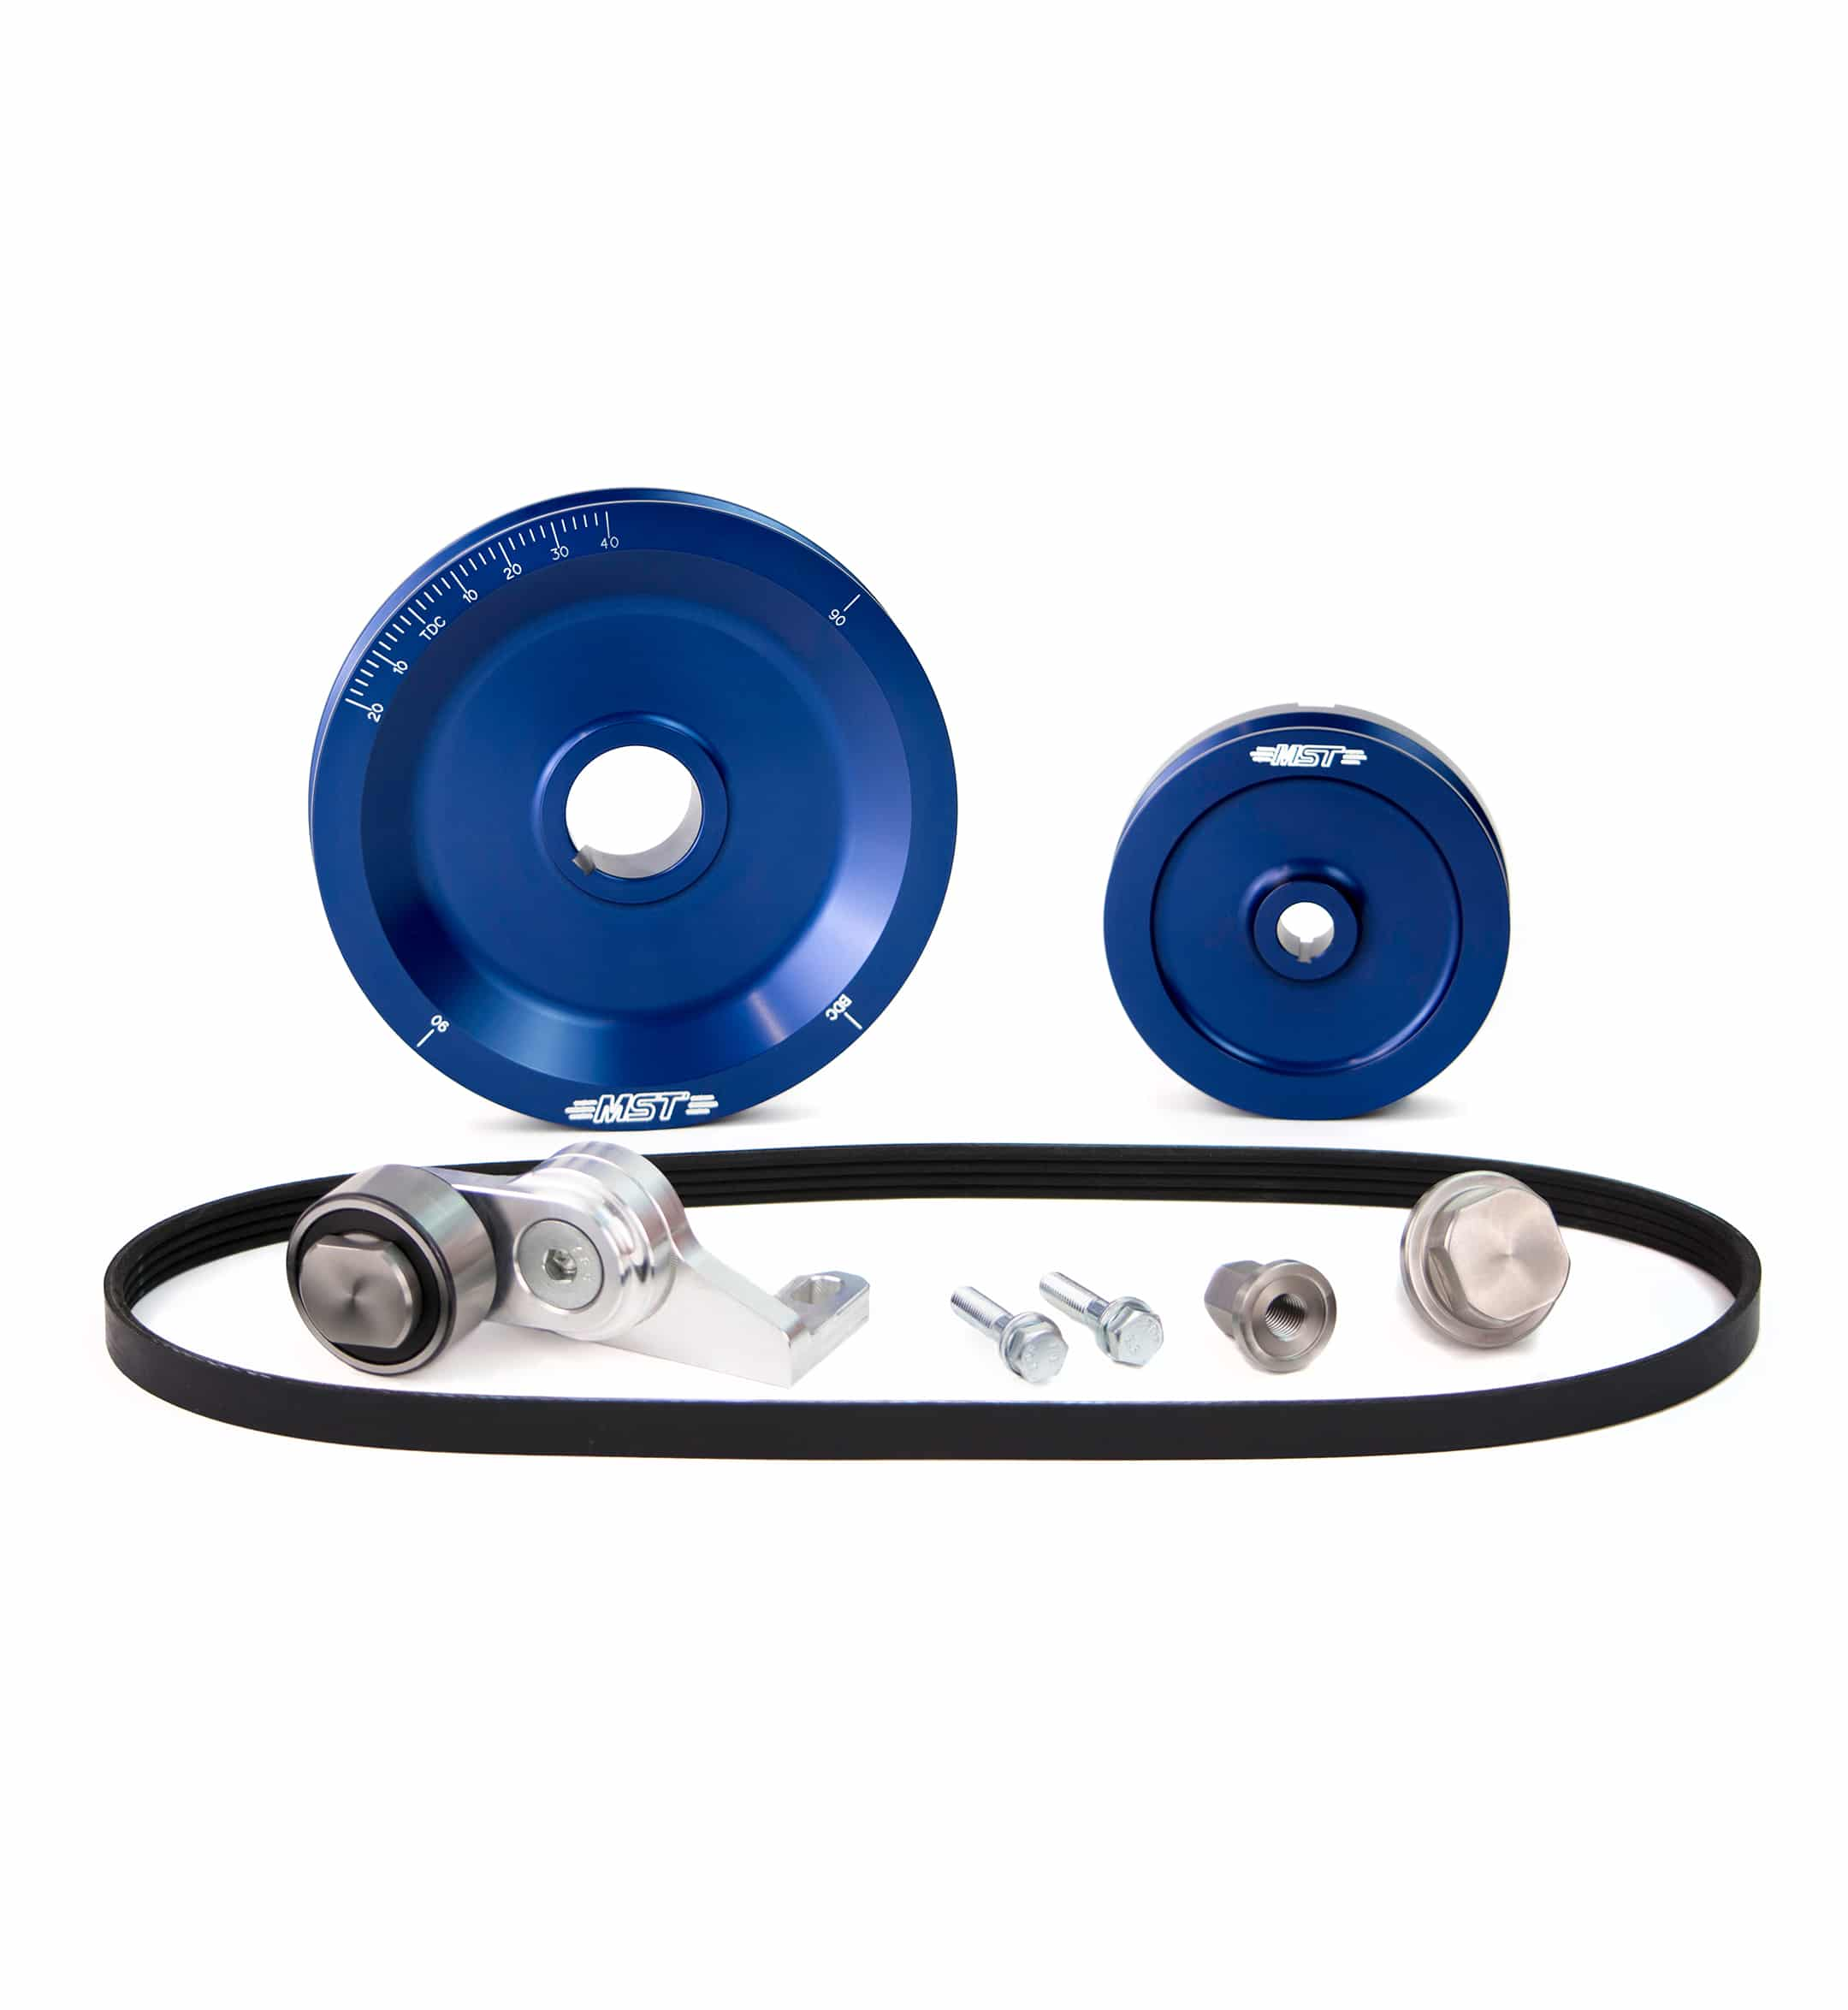 PulleySystem-Blue-Original